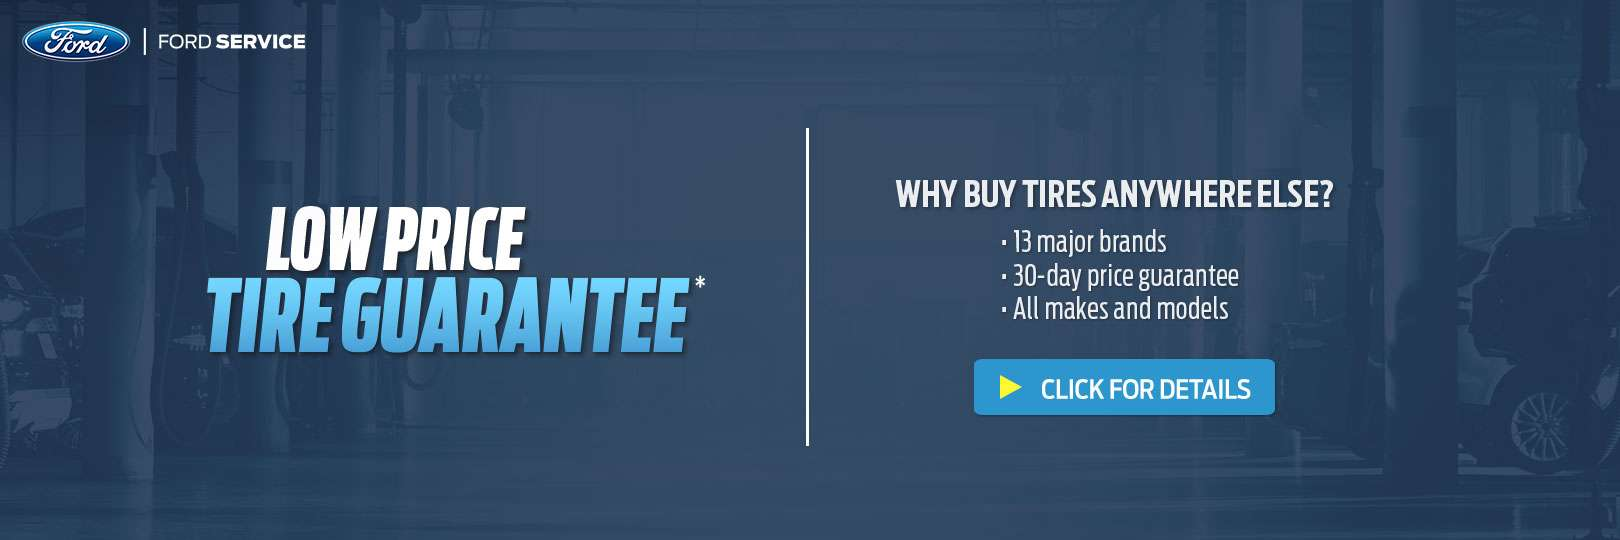 Low Price Tire Guarantee at Brown Motors Ford in Petoskey